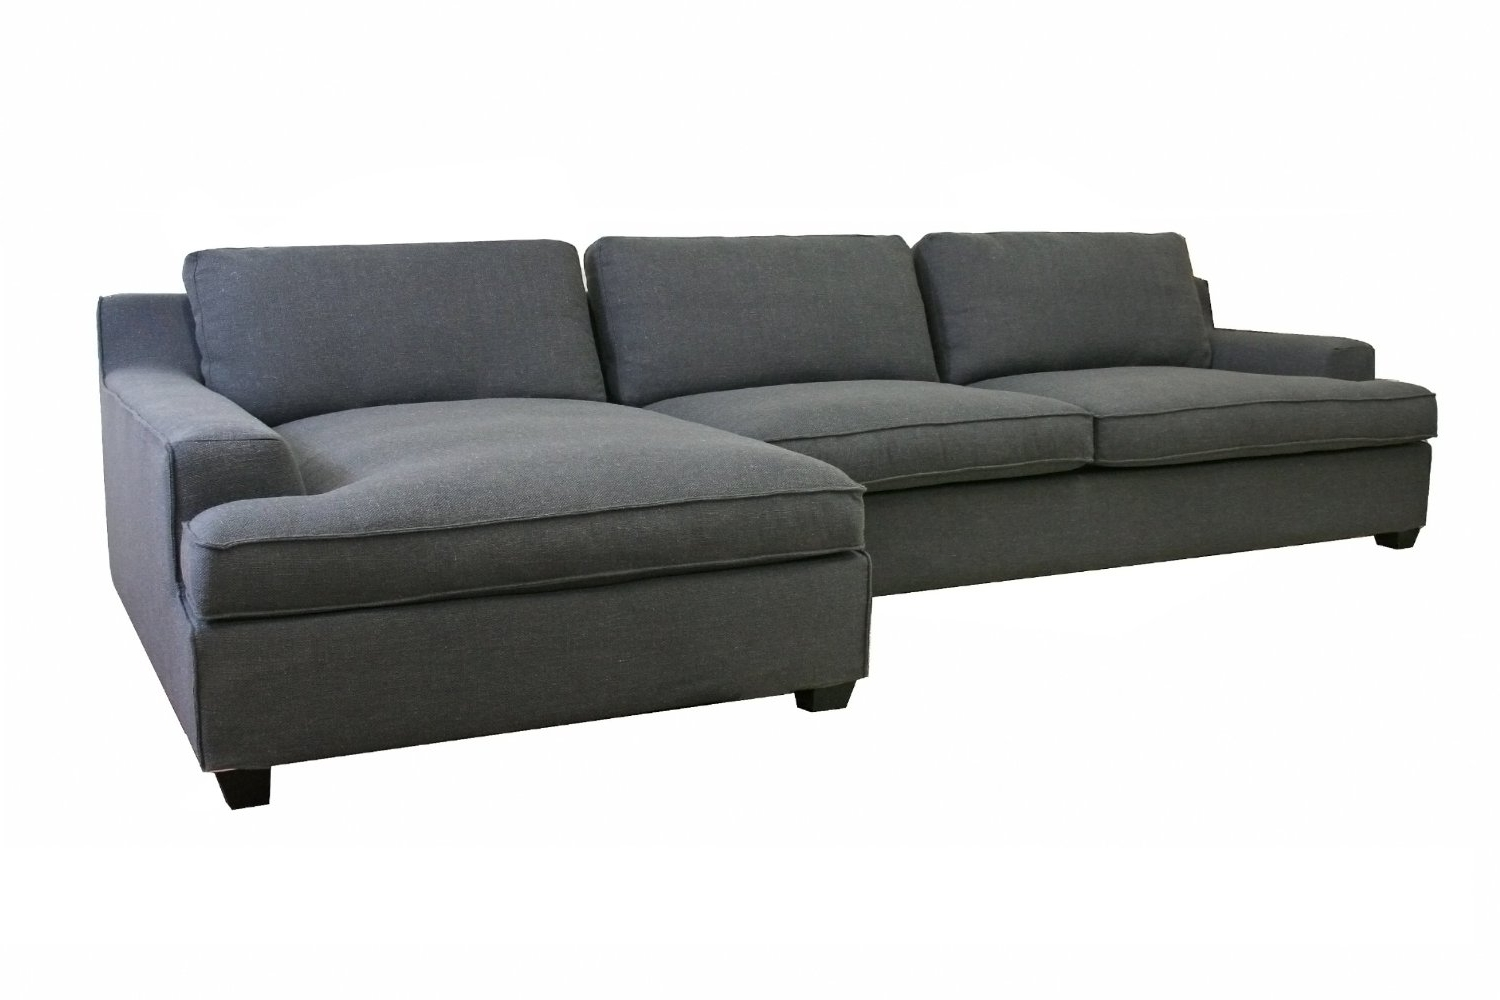 Sectional Sofa Design: Sleeper Sofa With Chaise Best Ever Regarding Newest Sectional Sleeper Sofas With Chaise (View 12 of 15)